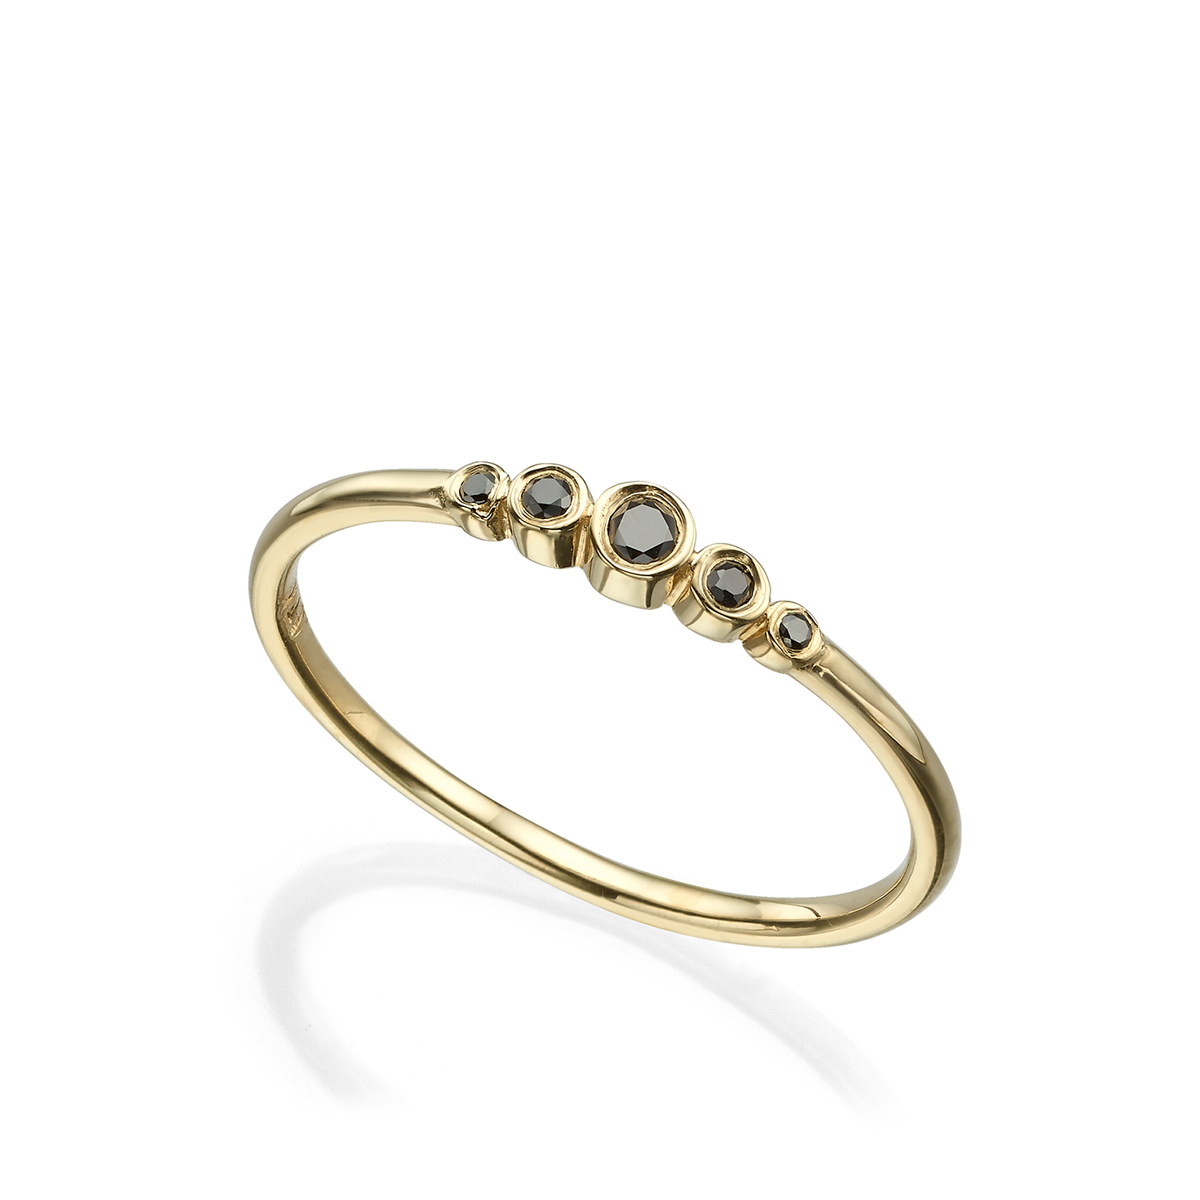 A delicate gold ring set with 5 black diamonds